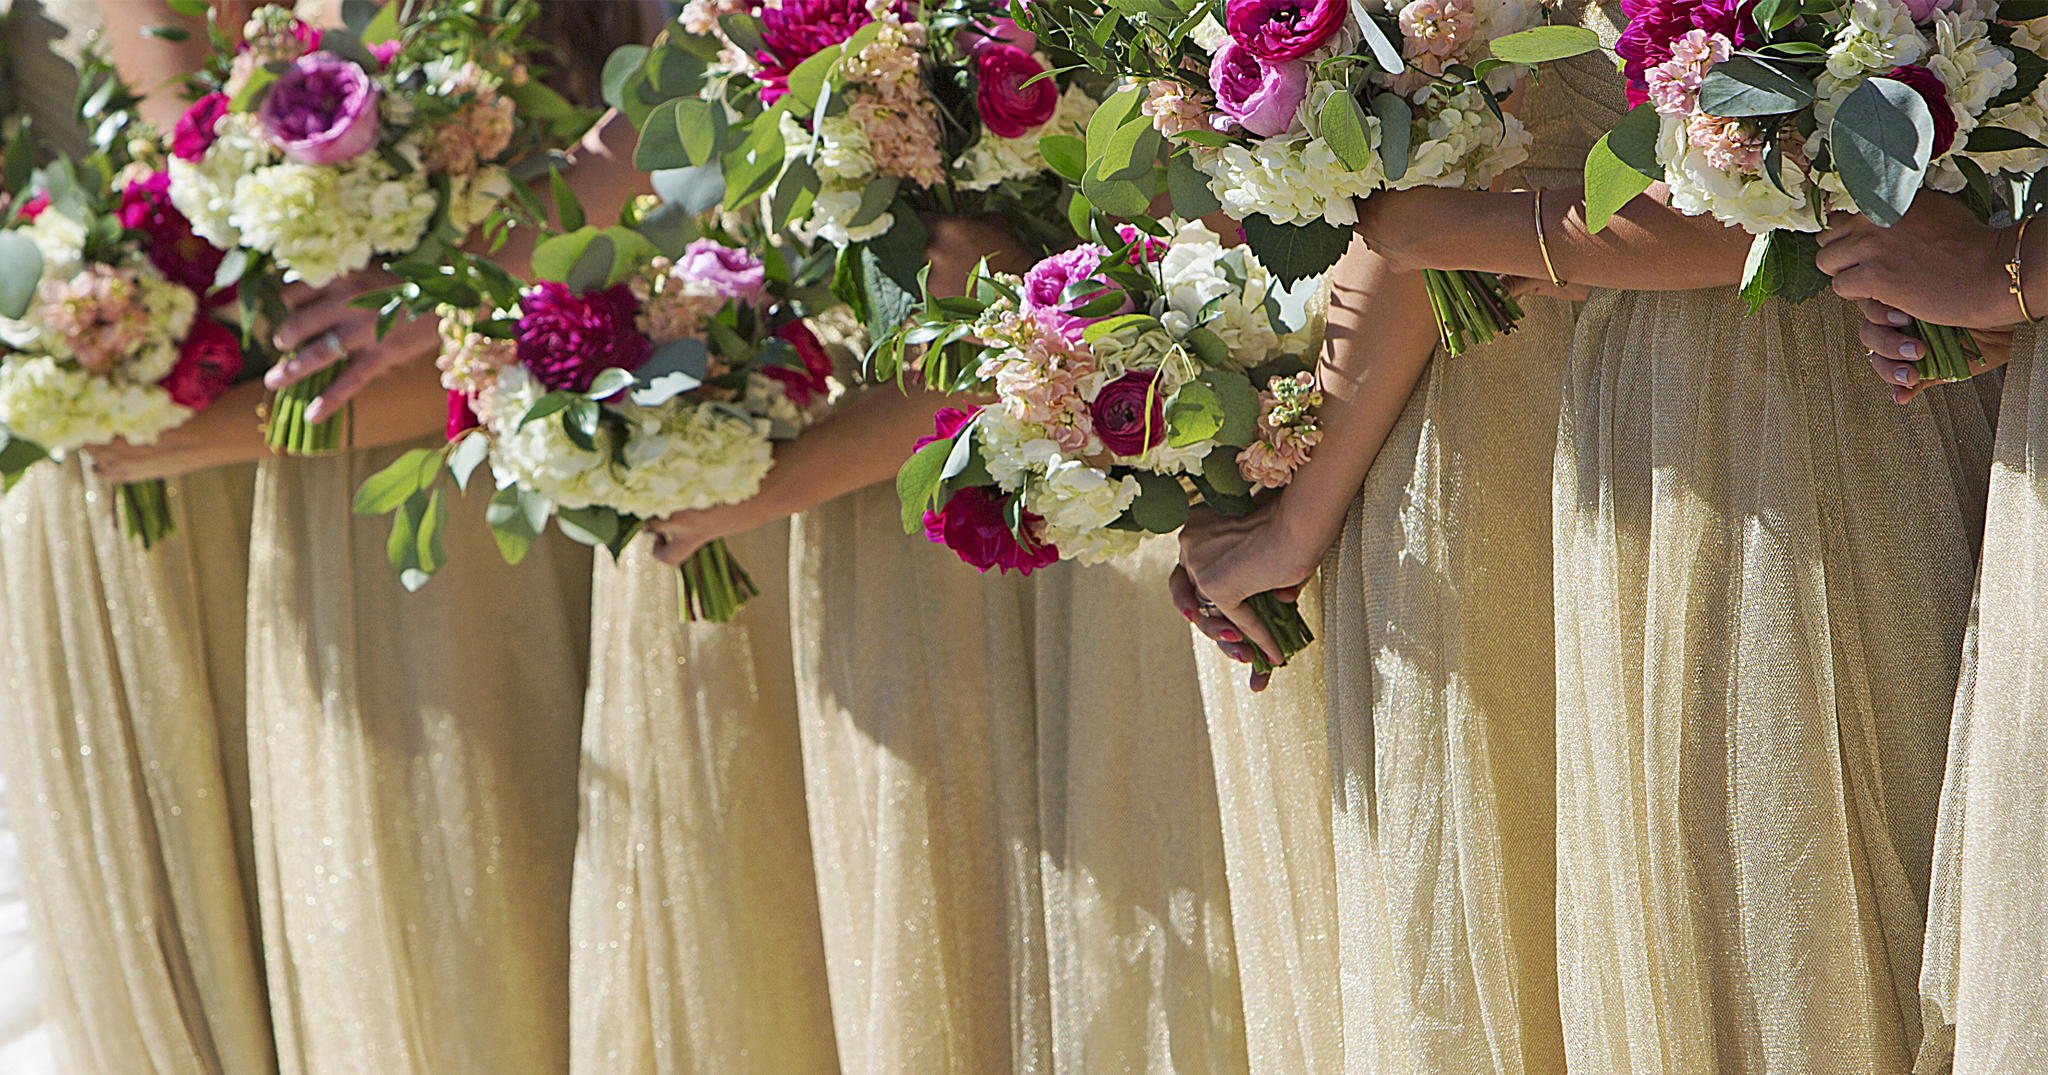 The 6 unexpected places to shop for bridesmaids dresses online bridalpulse the unexpected places to shop for bridesmaids dresses photo istock follow ombrellifo Gallery